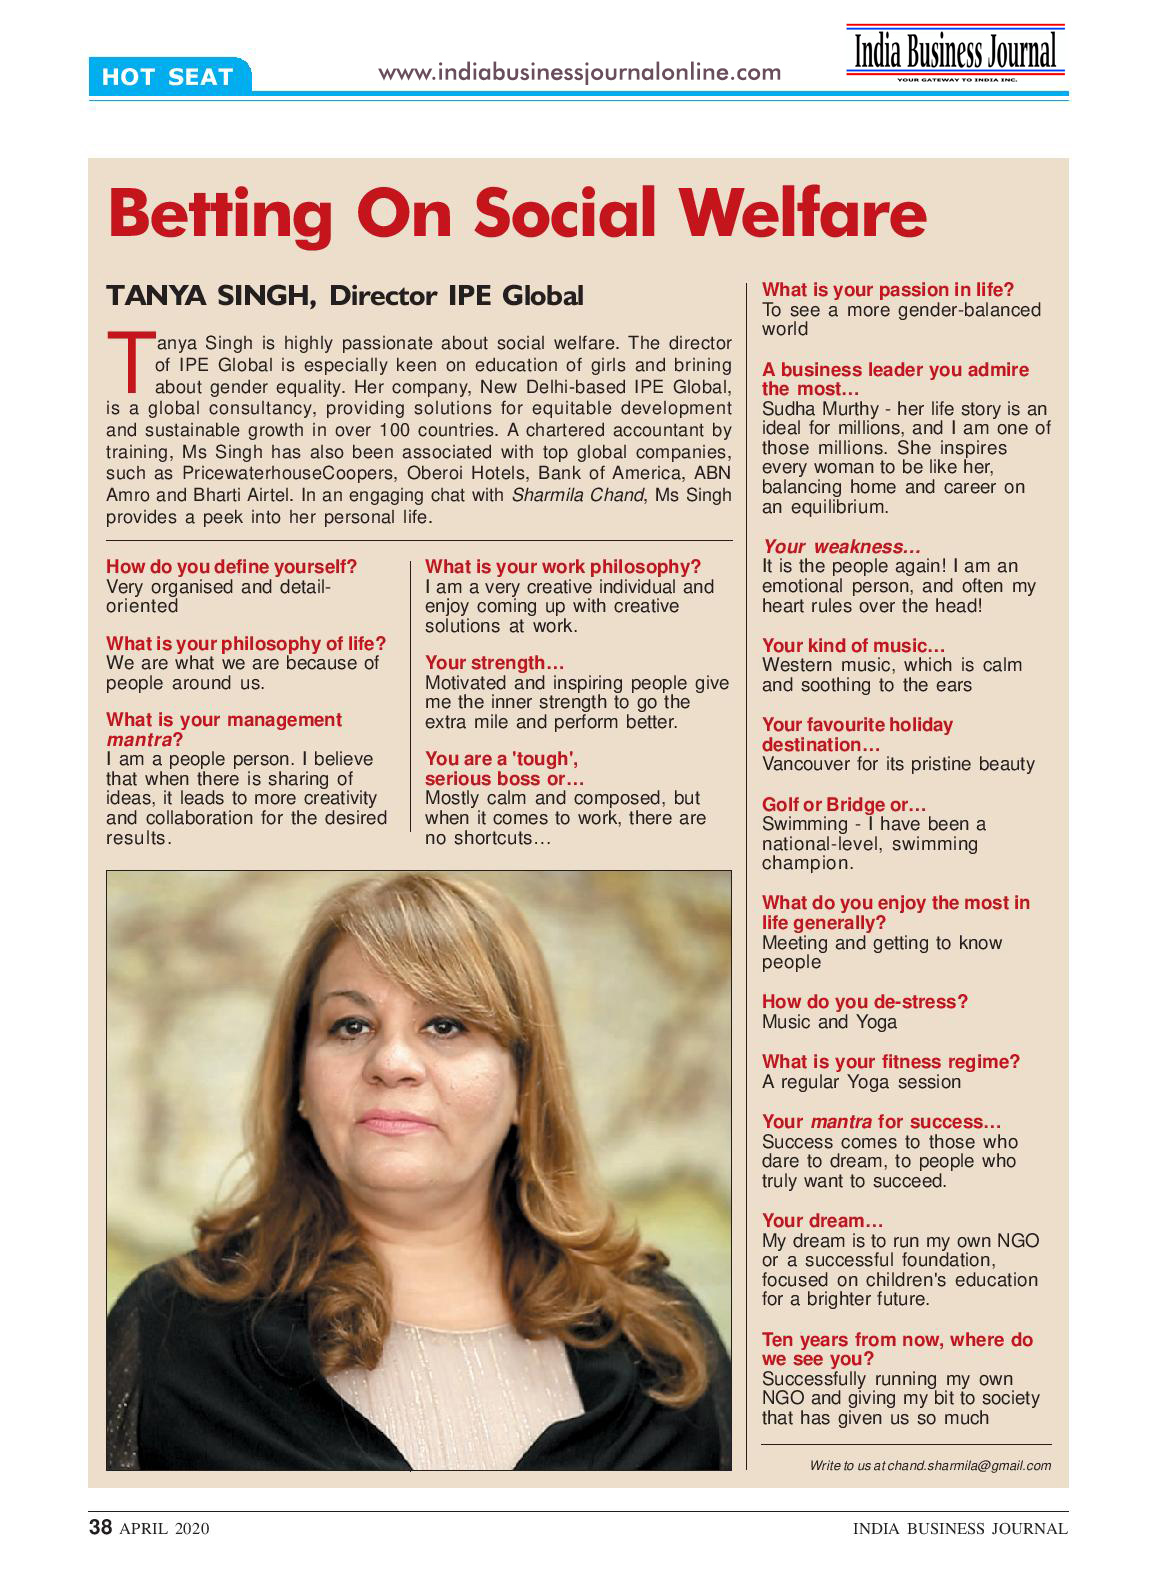 Tanya Singh, Director IPE Global exclusively featured in India Business Journal, April issue